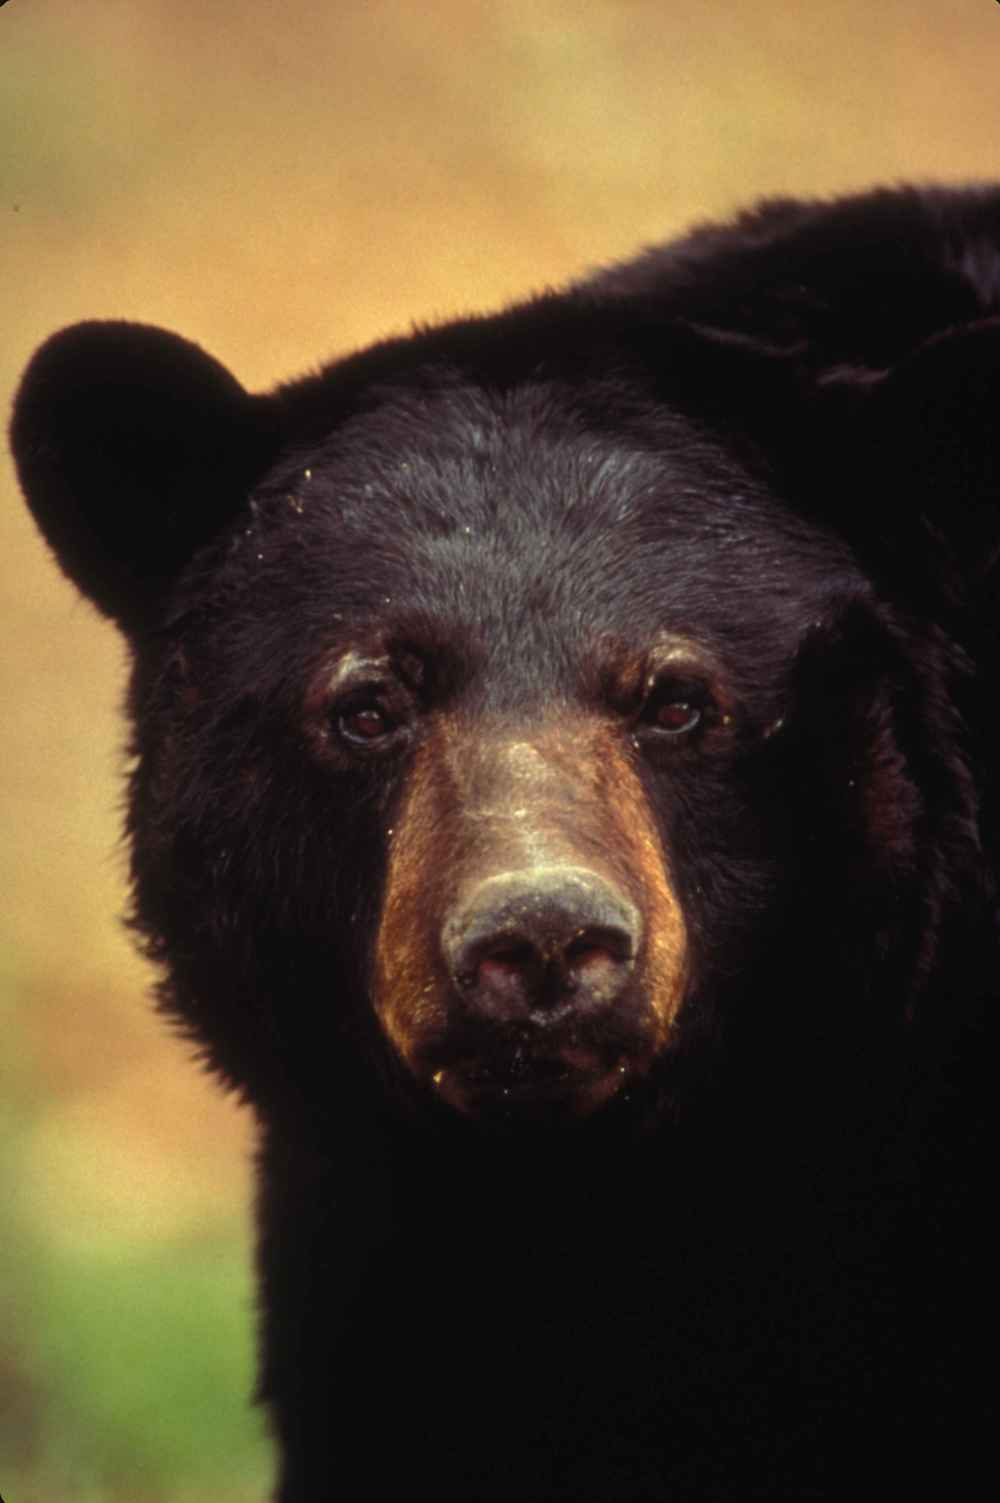 American black bear. Photo: Traylor Waverley, US Fish and Wildlife Services - Commons Wikimedia